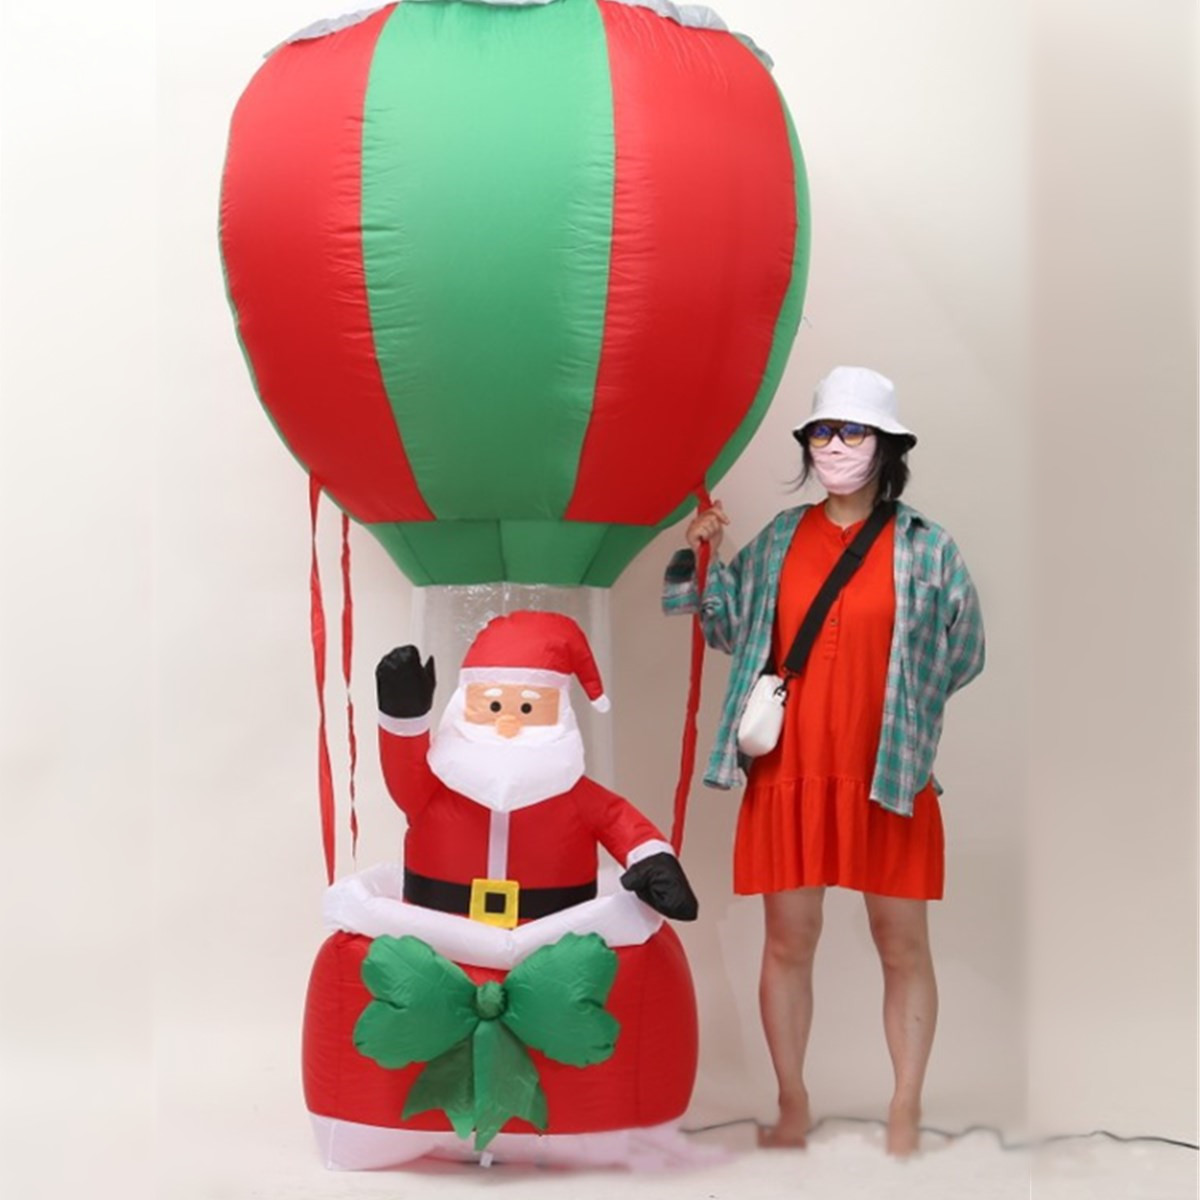 2.4M Air Inflatable Santa Claus Snowman hot air balloon Outdoor Airblown Christmas Decoration Figure Kids Classic Toys free express 6 meters long inflatable snowman for christmas decoration blow up cute snowman balloon for garden toys